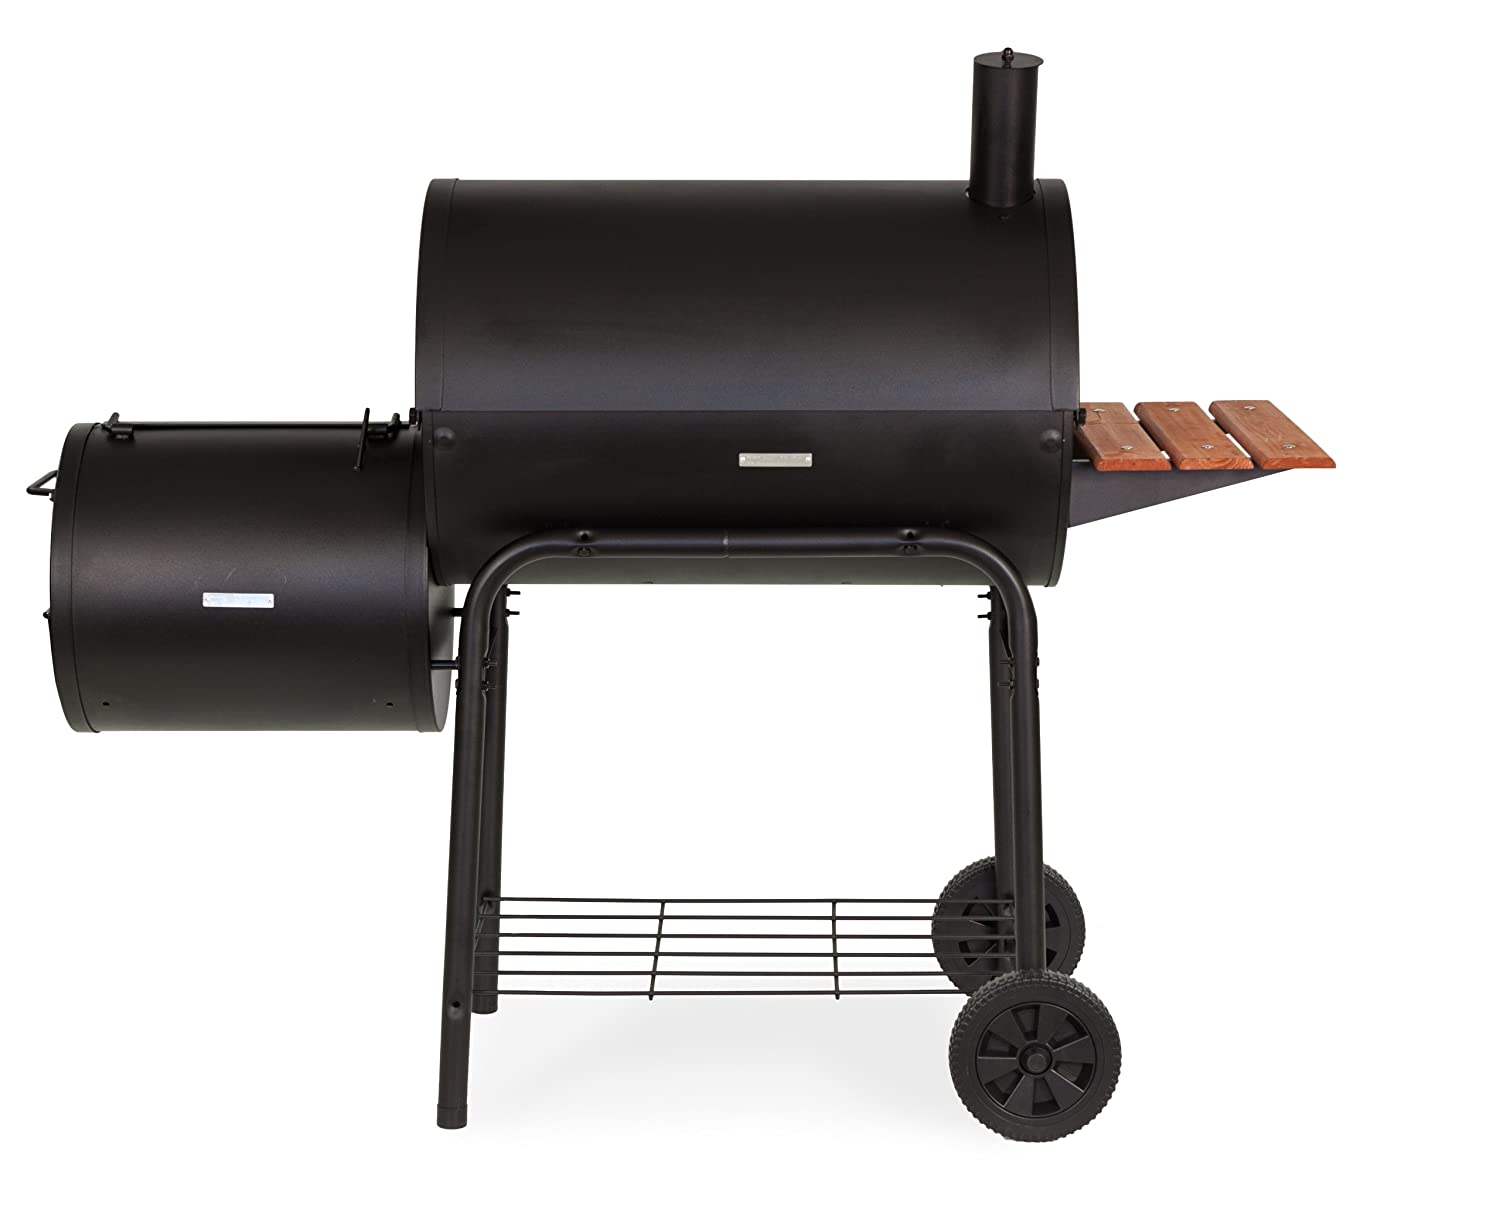 Char griller professional grill and smoker - Amazon Com Char Griller 1224 Smokin Pro 830 Square Inch Charcoal Grill With Side Fire Box Freestanding Grills Garden Outdoor